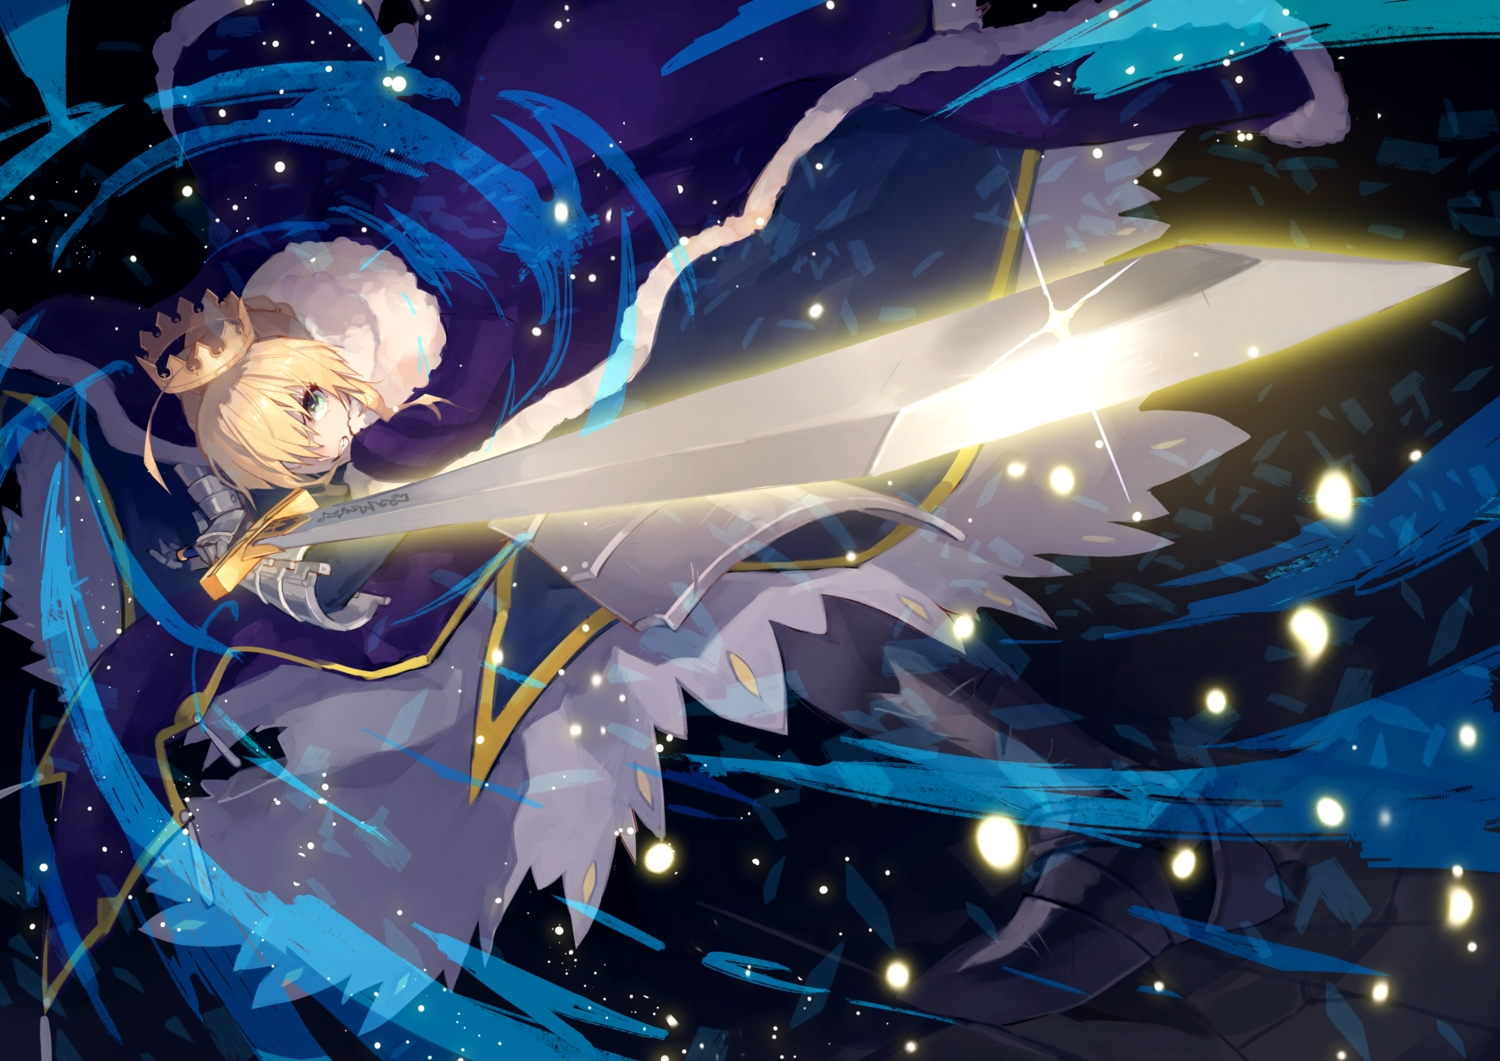 armor artoria_pendragon_(all) blonde_hair cape crown fate/grand_order fate_(series) green_eyes saber short_hair sword uedrk_yamato weapon